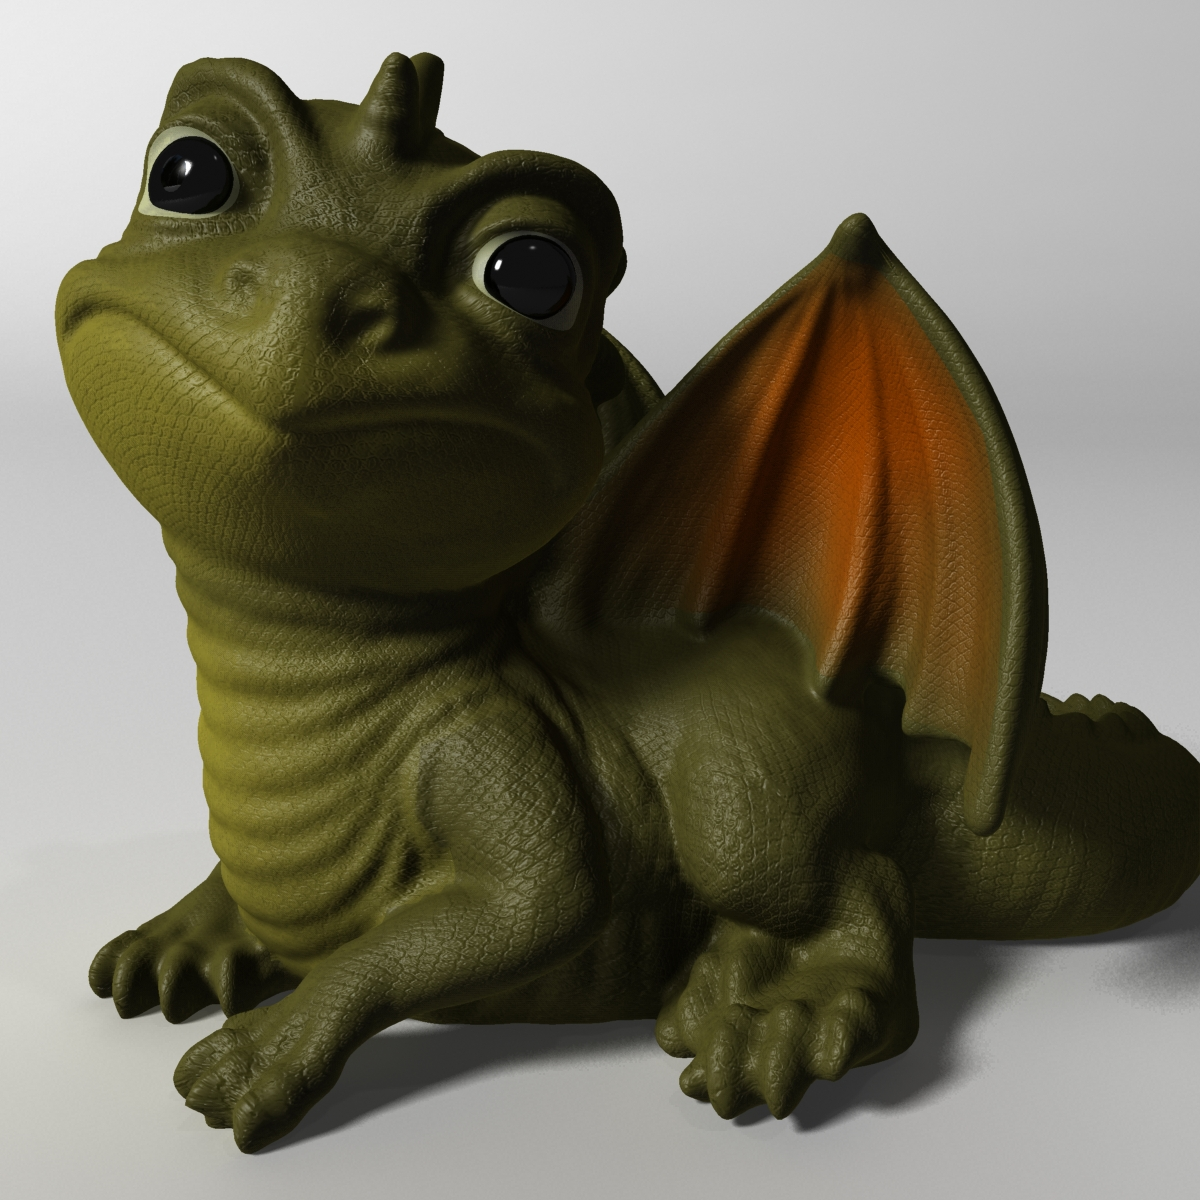 körpə dragon 3d model max fbx obj 222287